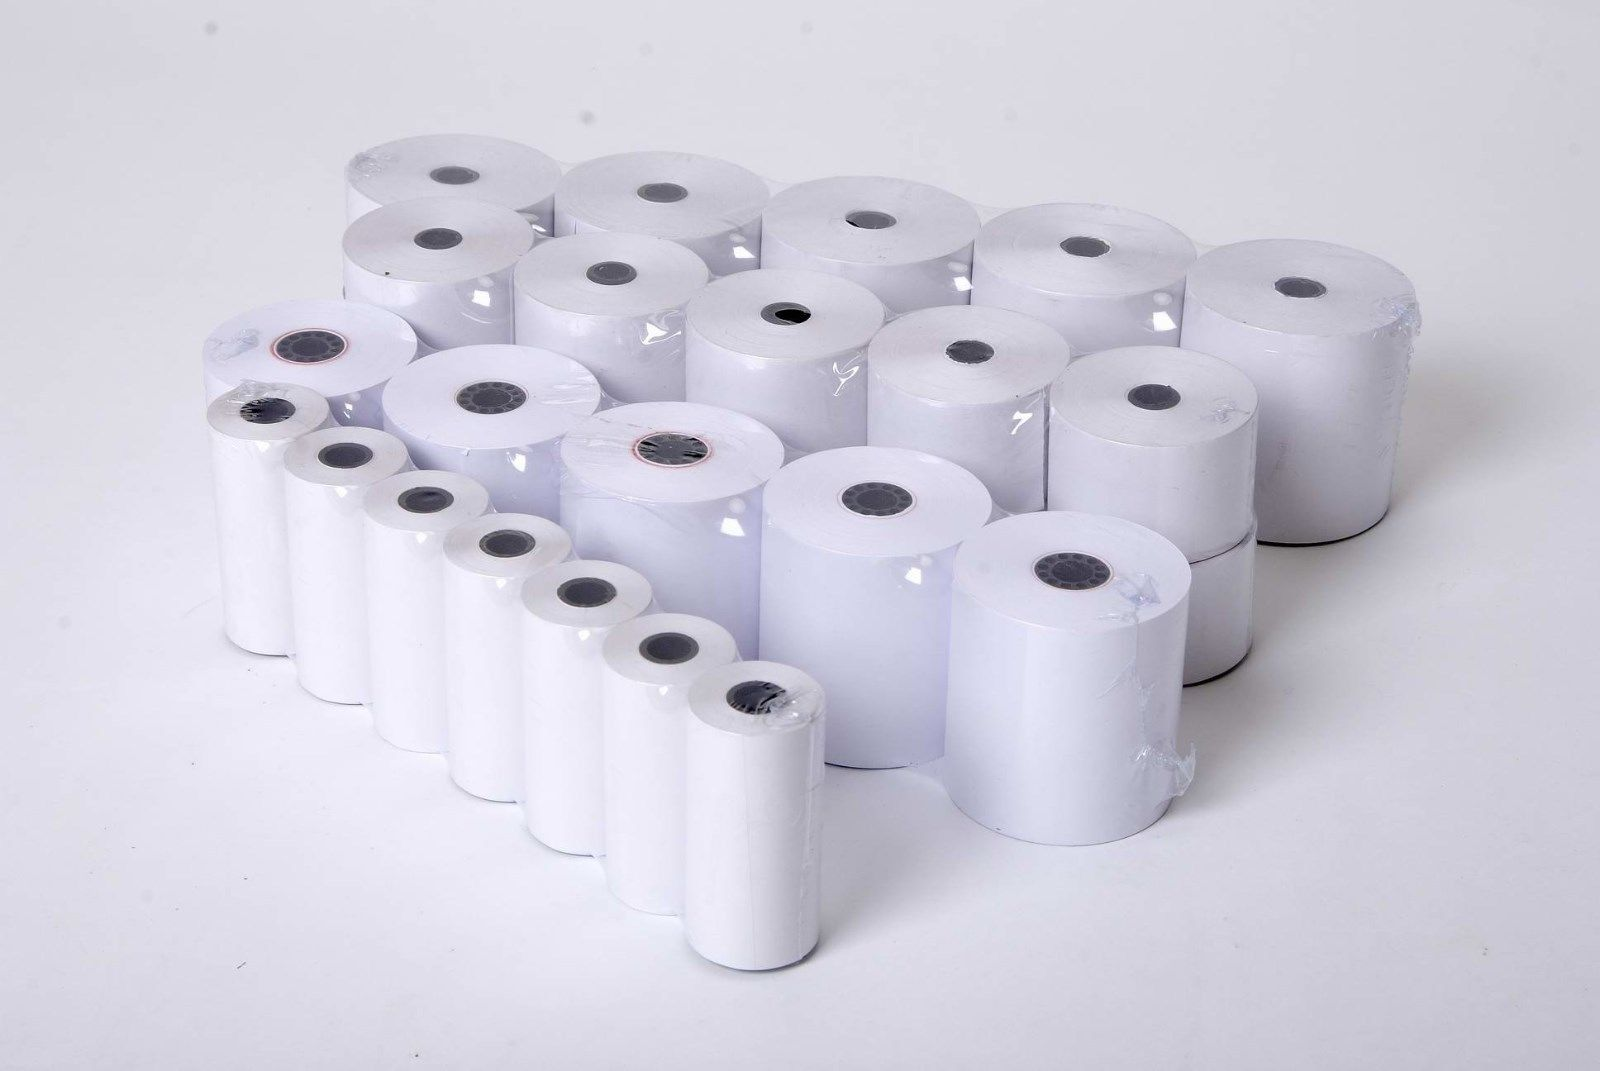 57-x-46-Thermal-Till-Rolls-20-Rolls-57mm-46mm-PDQ-ROLLS